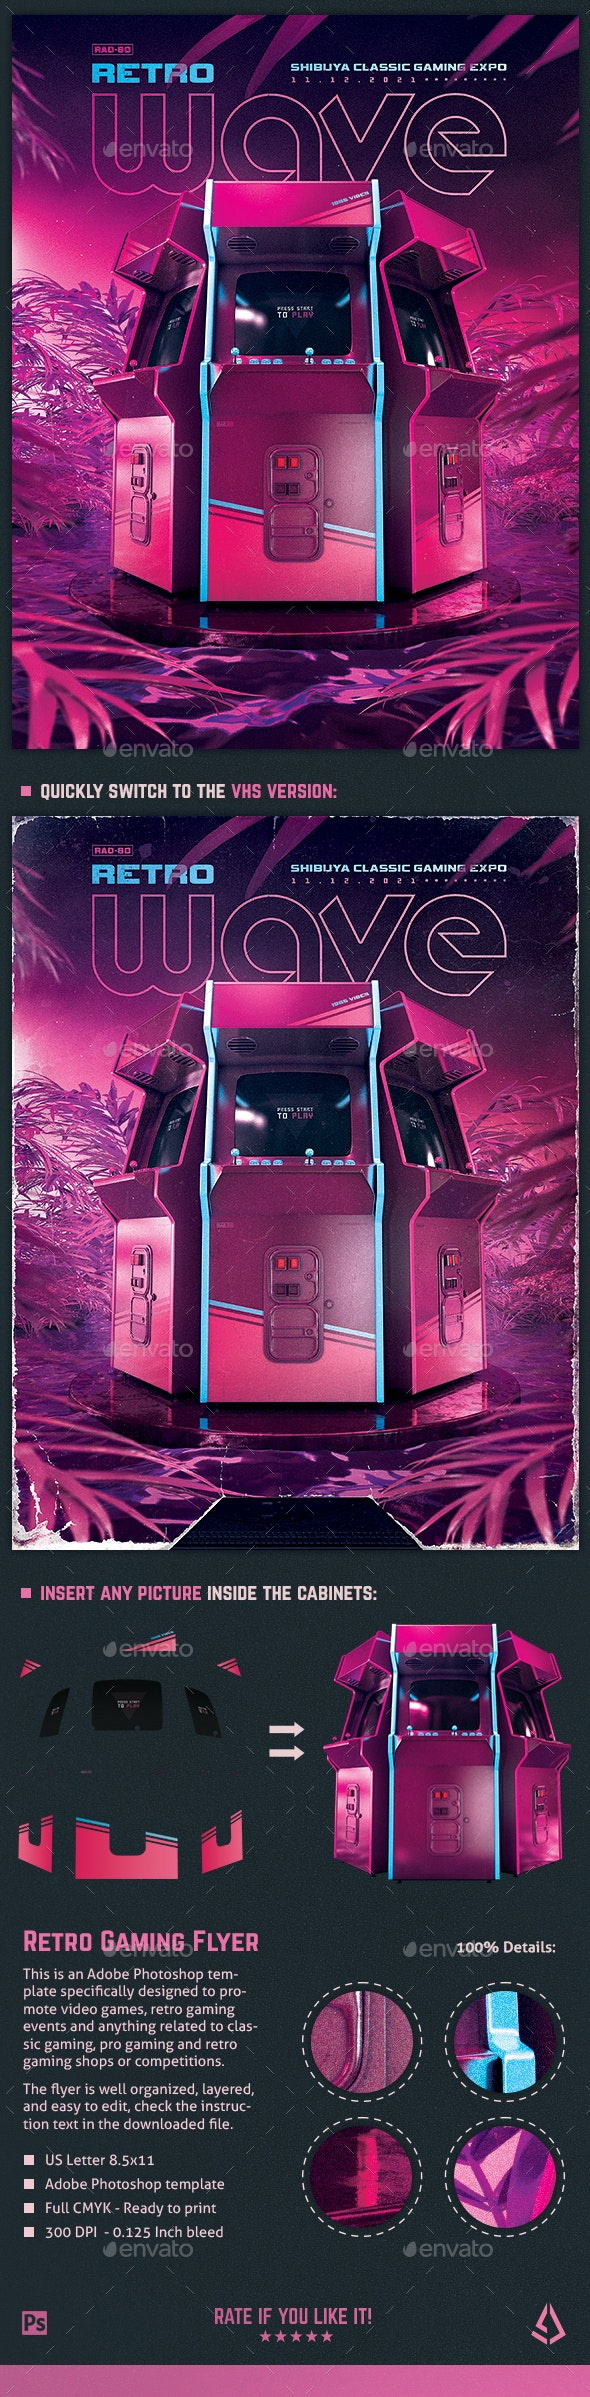 Retro Gaming Flyer 80s Synthwave World - Miscellaneous Events